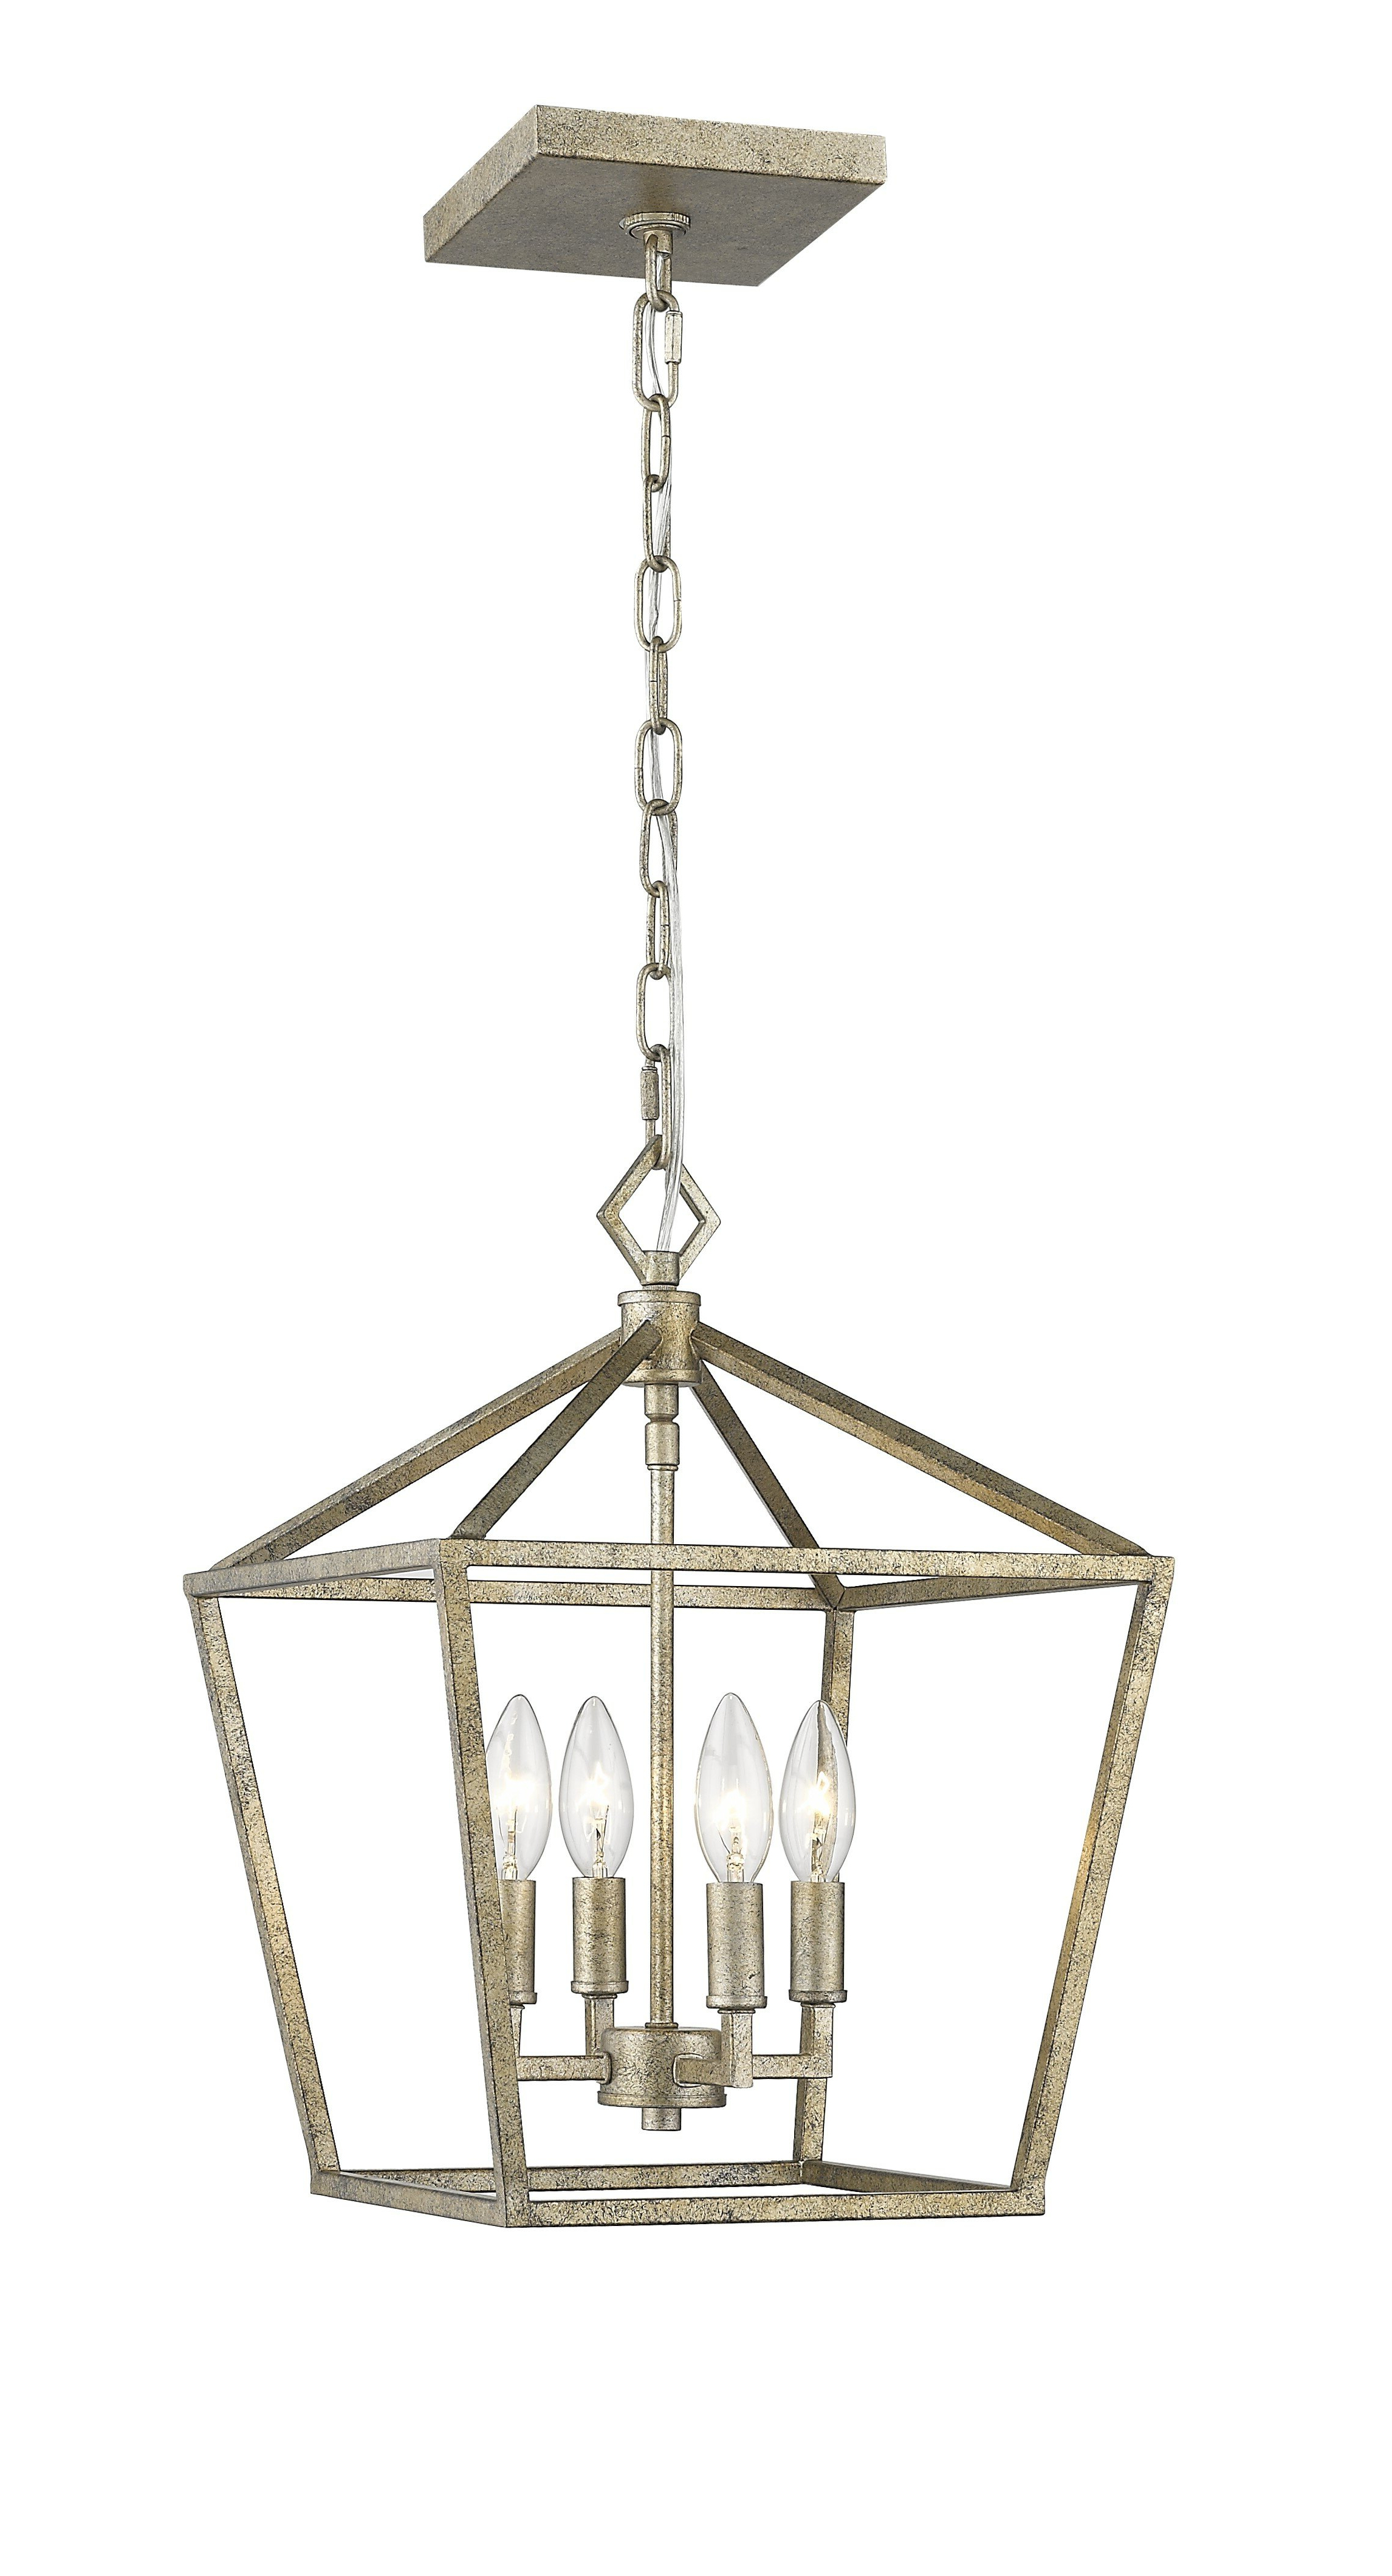 Varnum 4 Light Lantern Pendants For Most Up To Date Varnum 4 Light Lantern Pendant (Gallery 4 of 20)